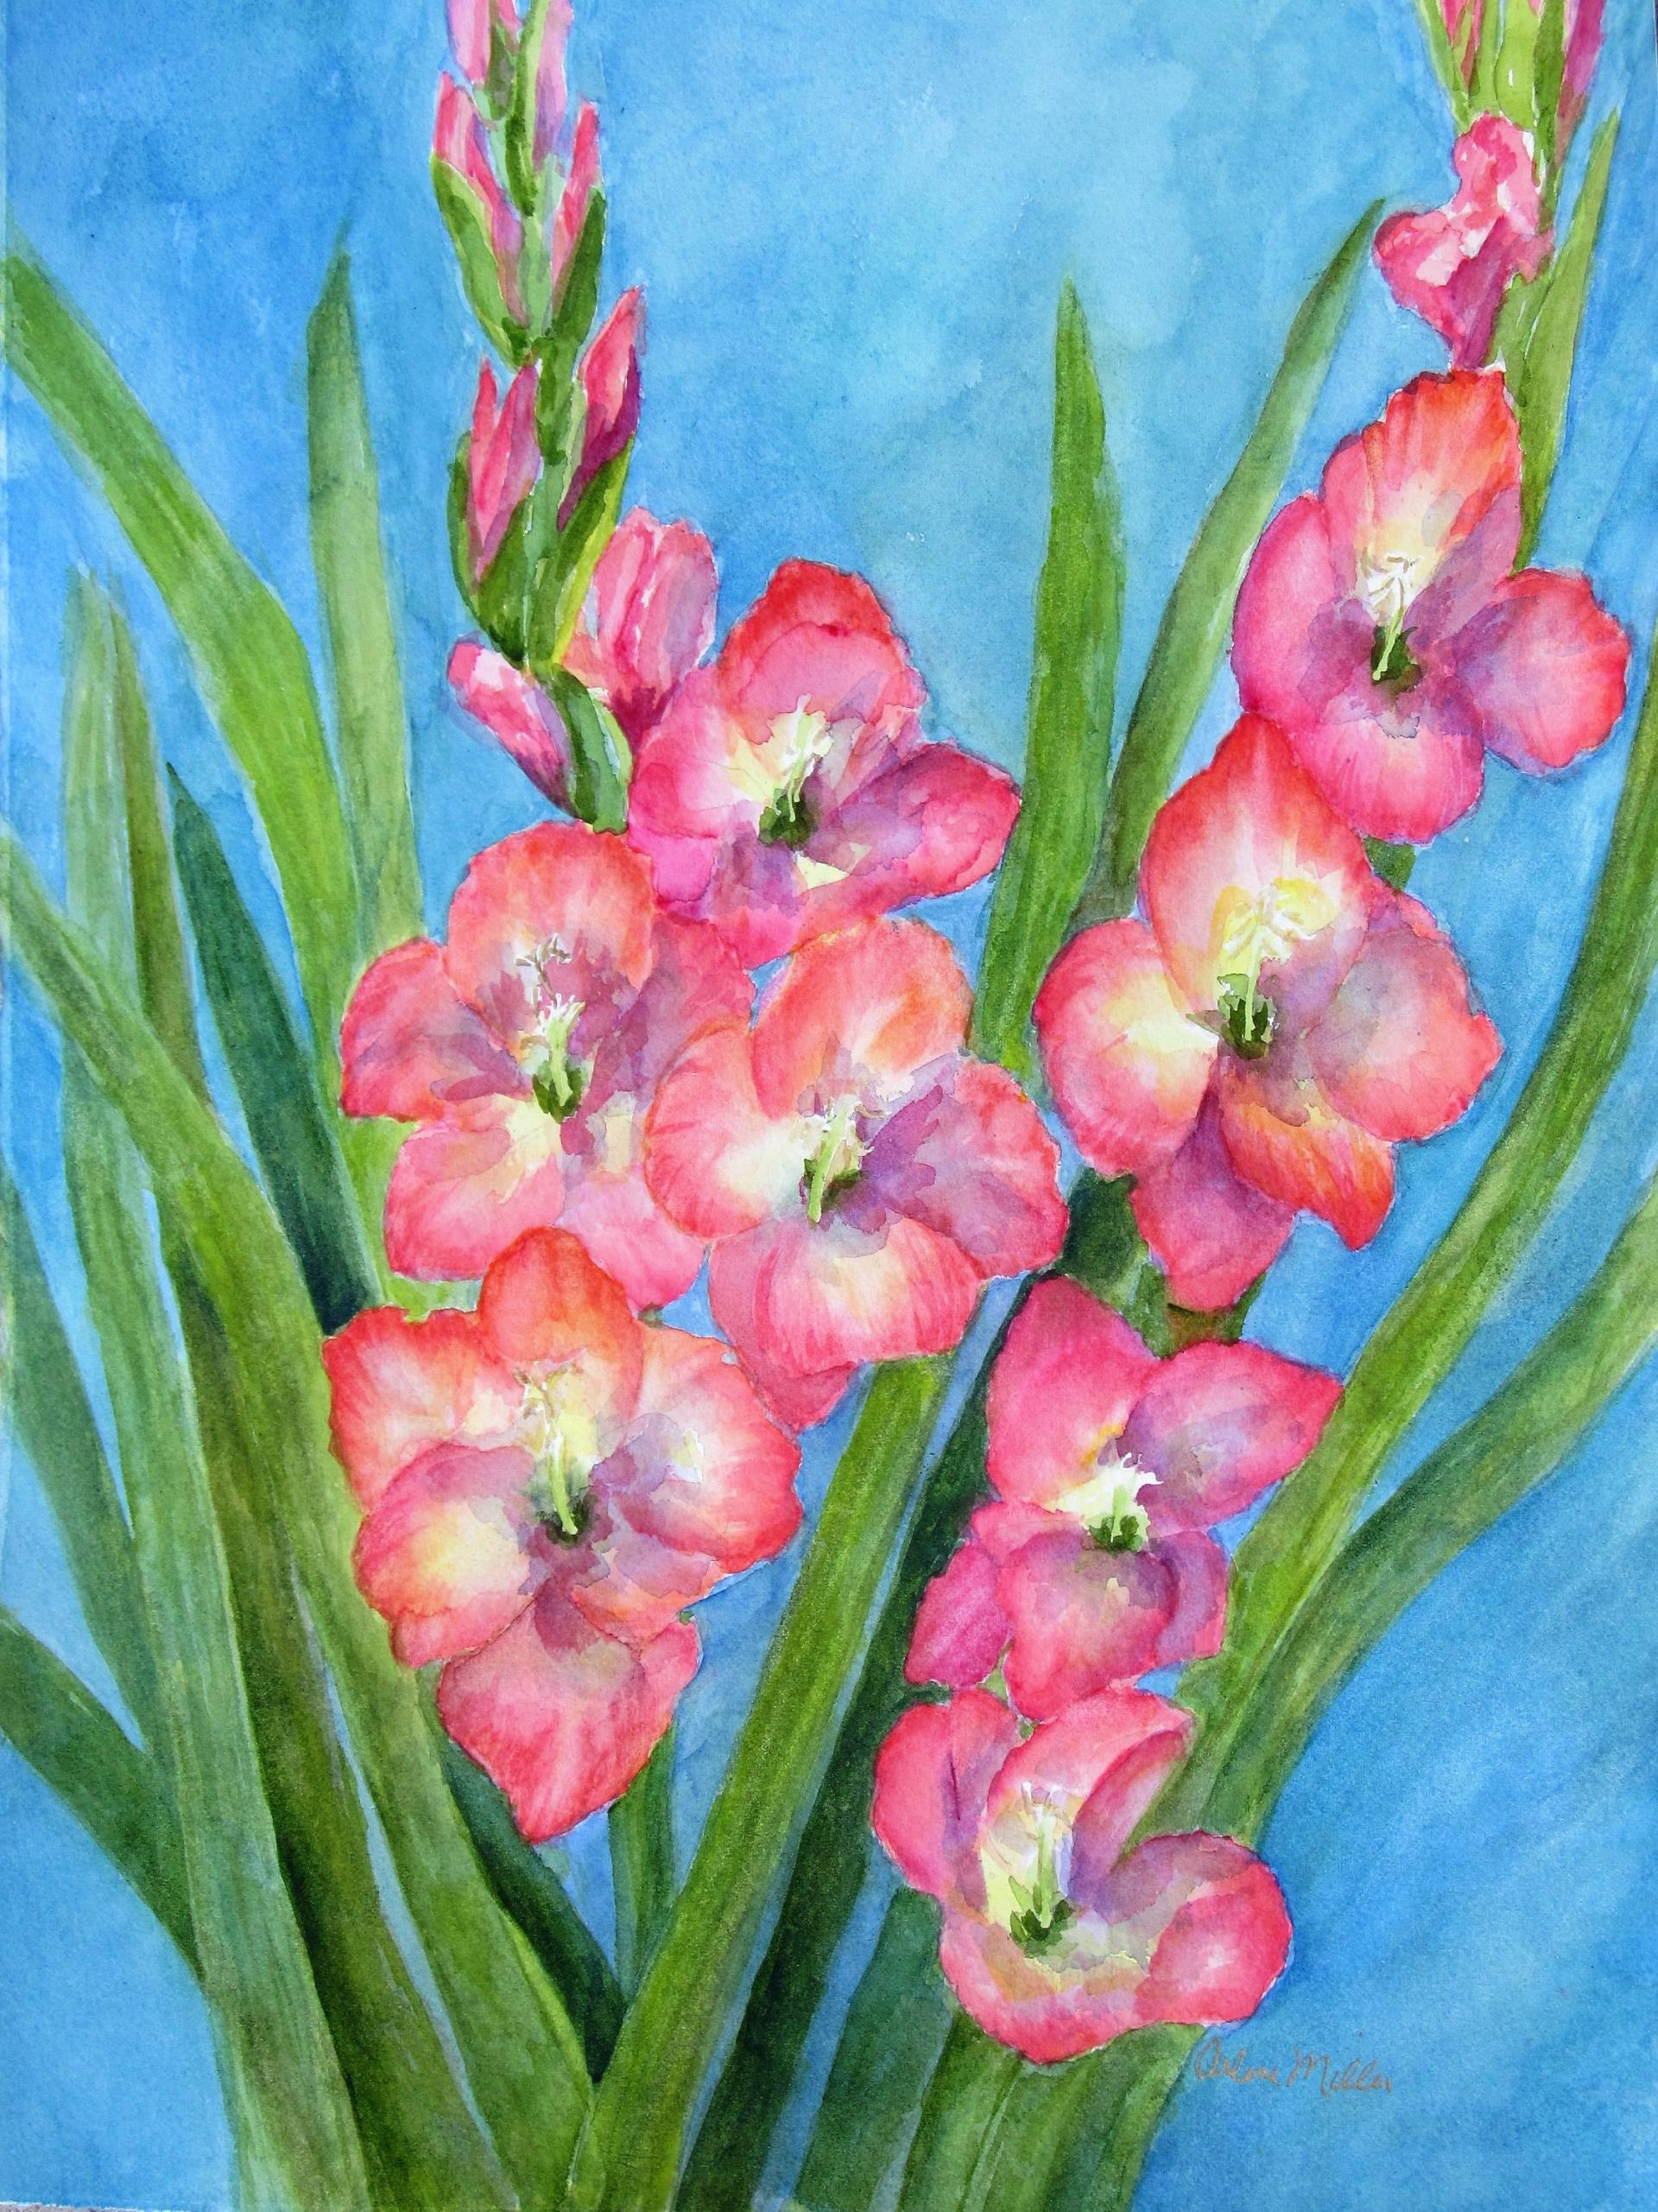 41b Arlene Miller - Gladioli - watercolor